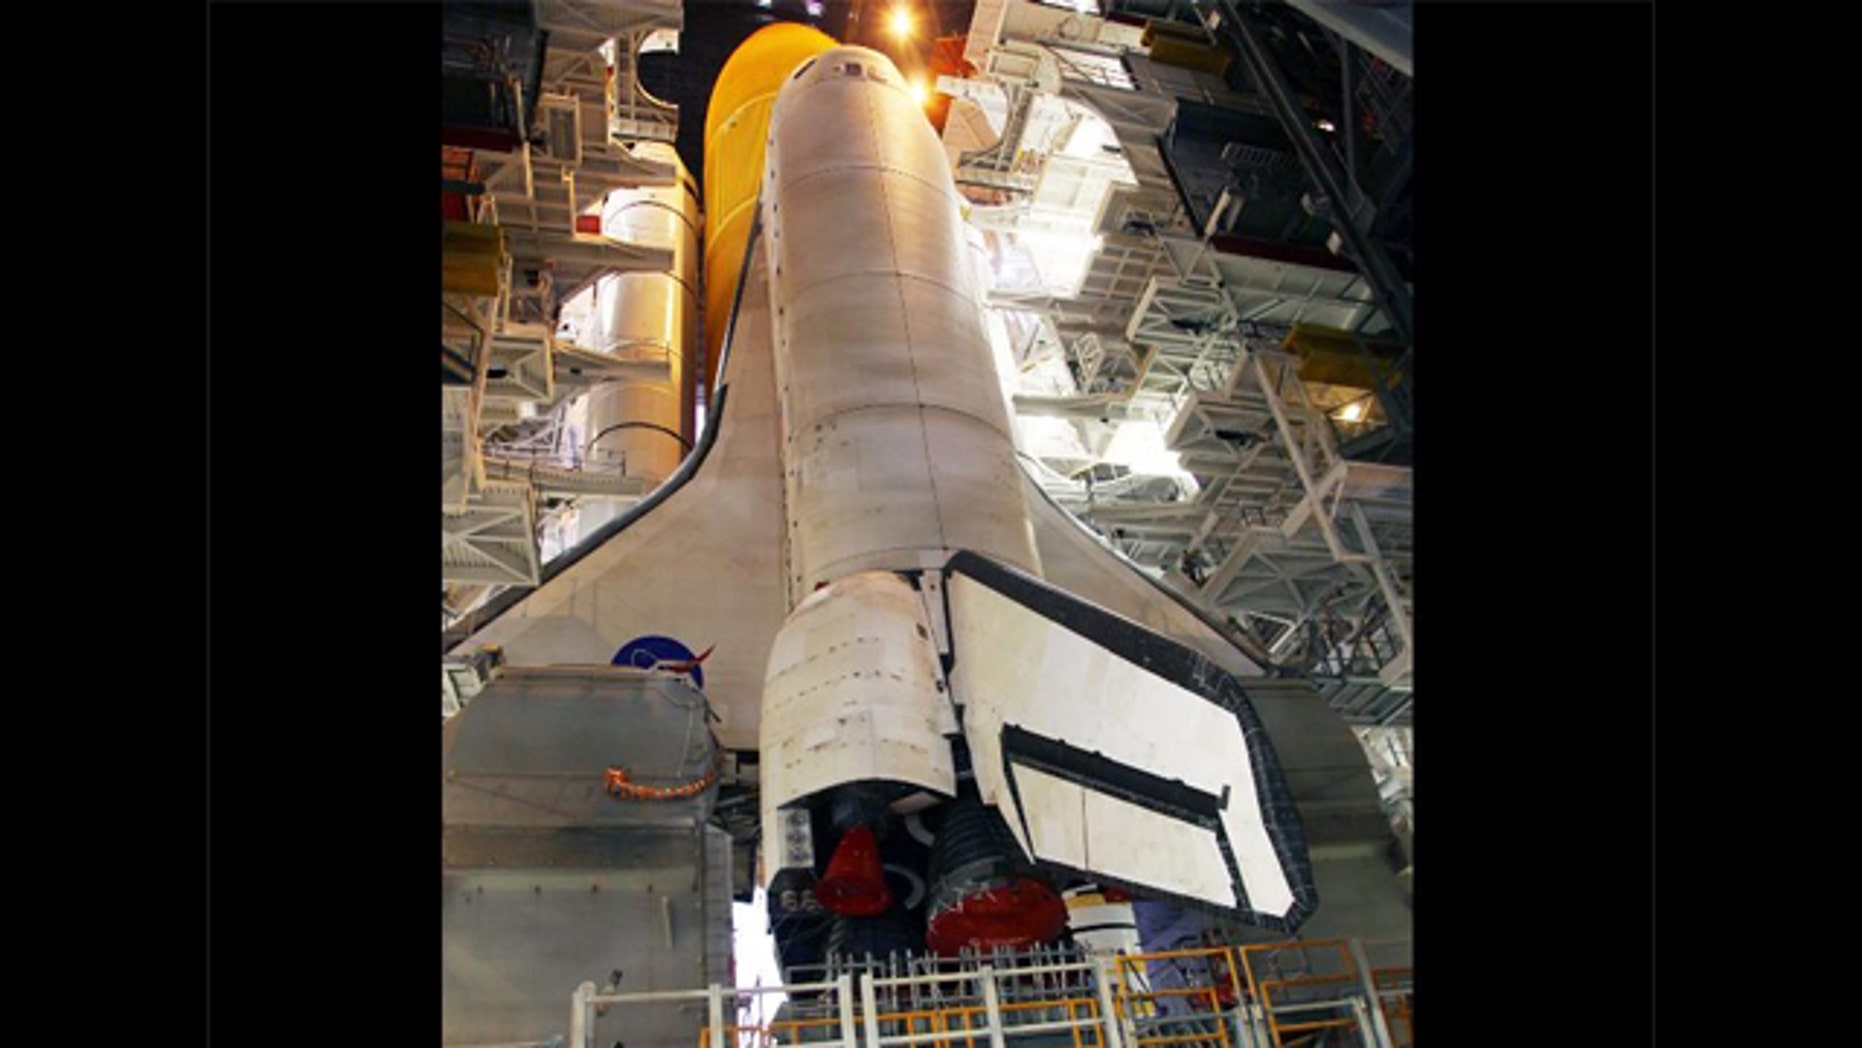 Work platforms inside the Vehicle Assembly Building at NASA's Kennedy Space Center in Florida surround the space shuttle Discovery, its solid rocket boosters and external fuel tank.